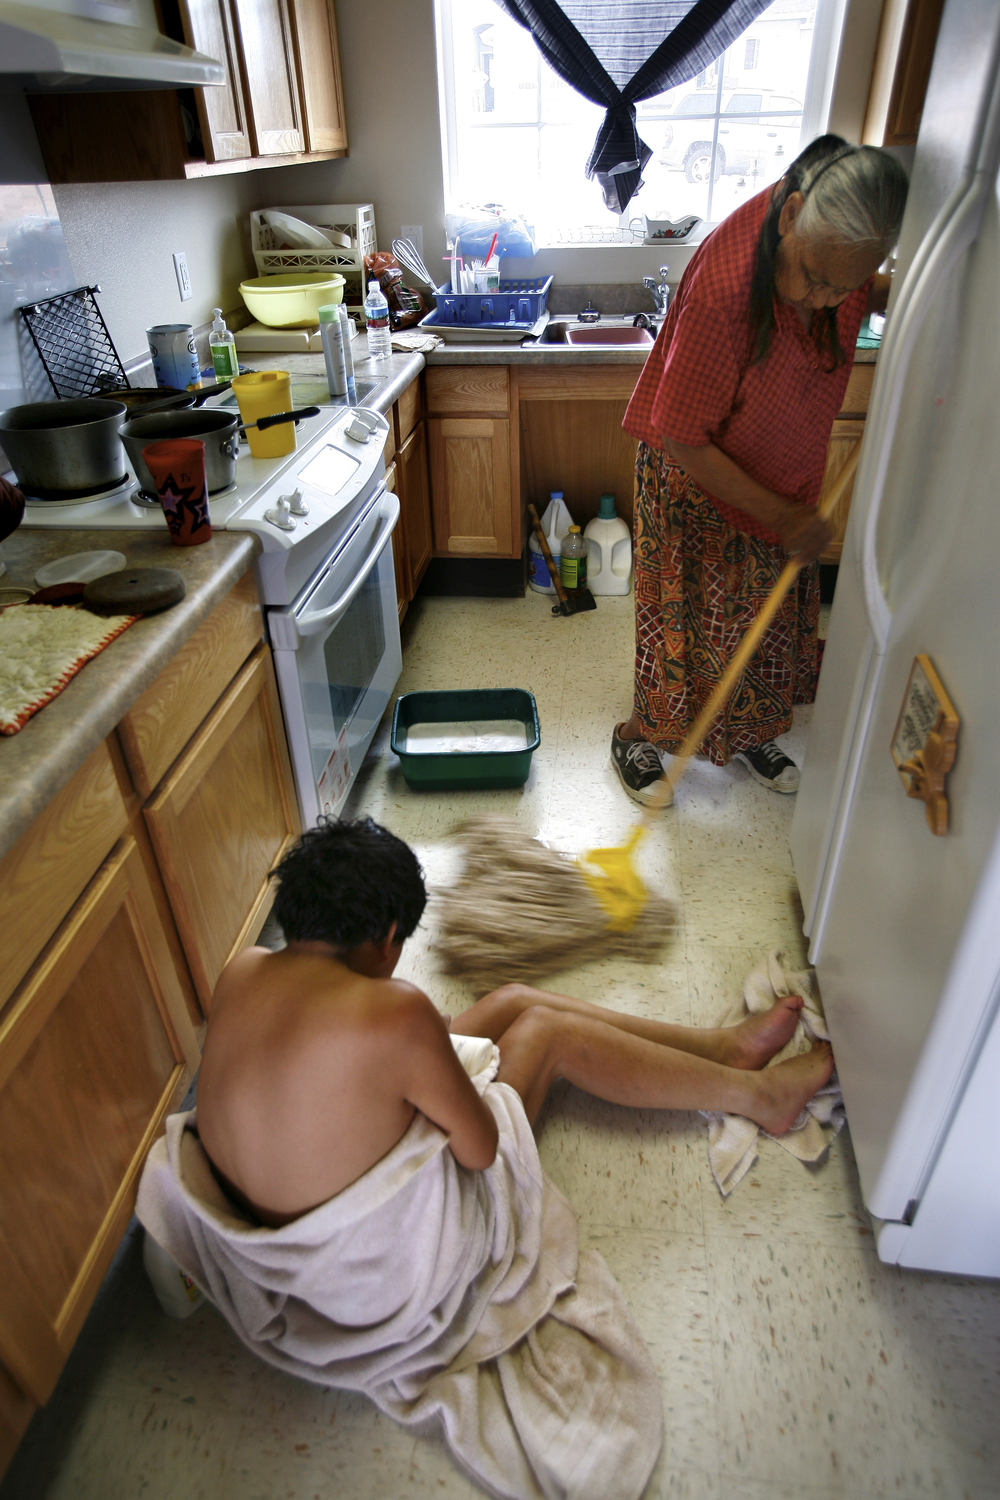 No longer able to get into a bathtub or shower, Laura Neztsosie is bathed by her mother out of bucket on the kitchen floor. ©Gail Fisher Los Angeles Times